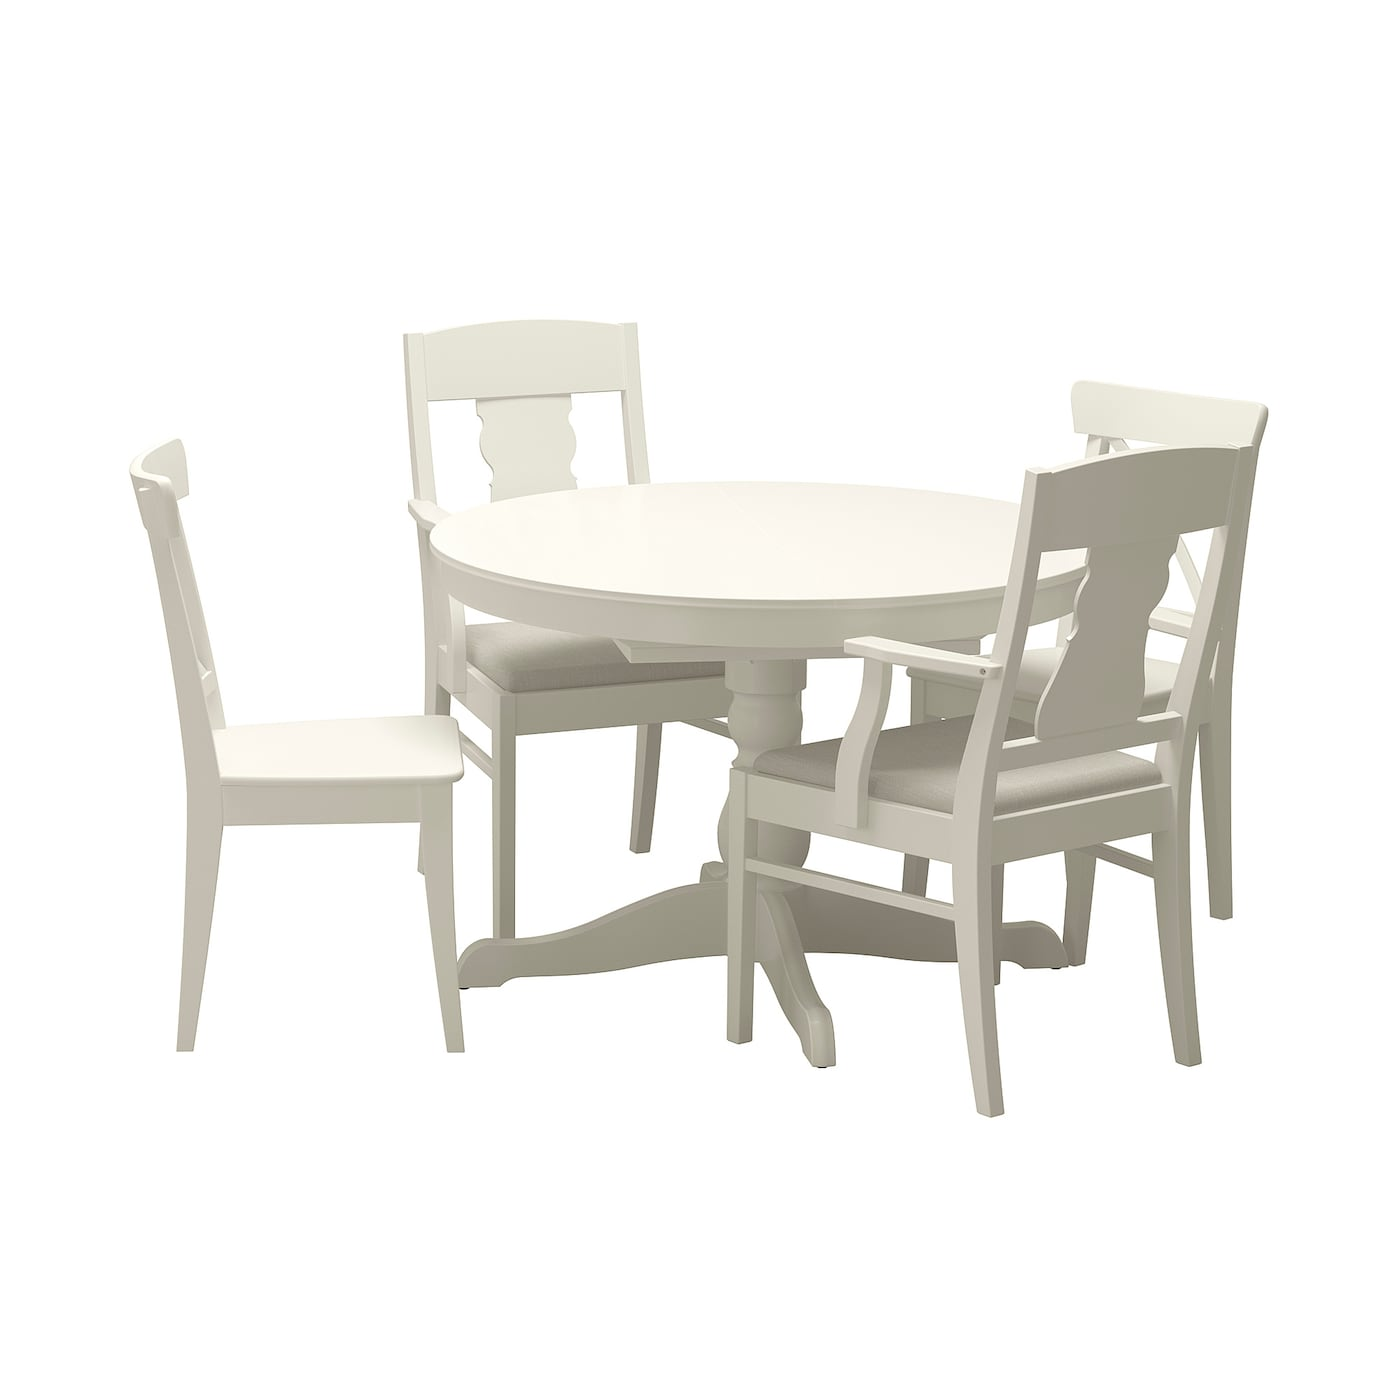 Ingatorp ingolf table and 4 chairs white nordvalla beige - Ikea dining table with 4 chairs ...